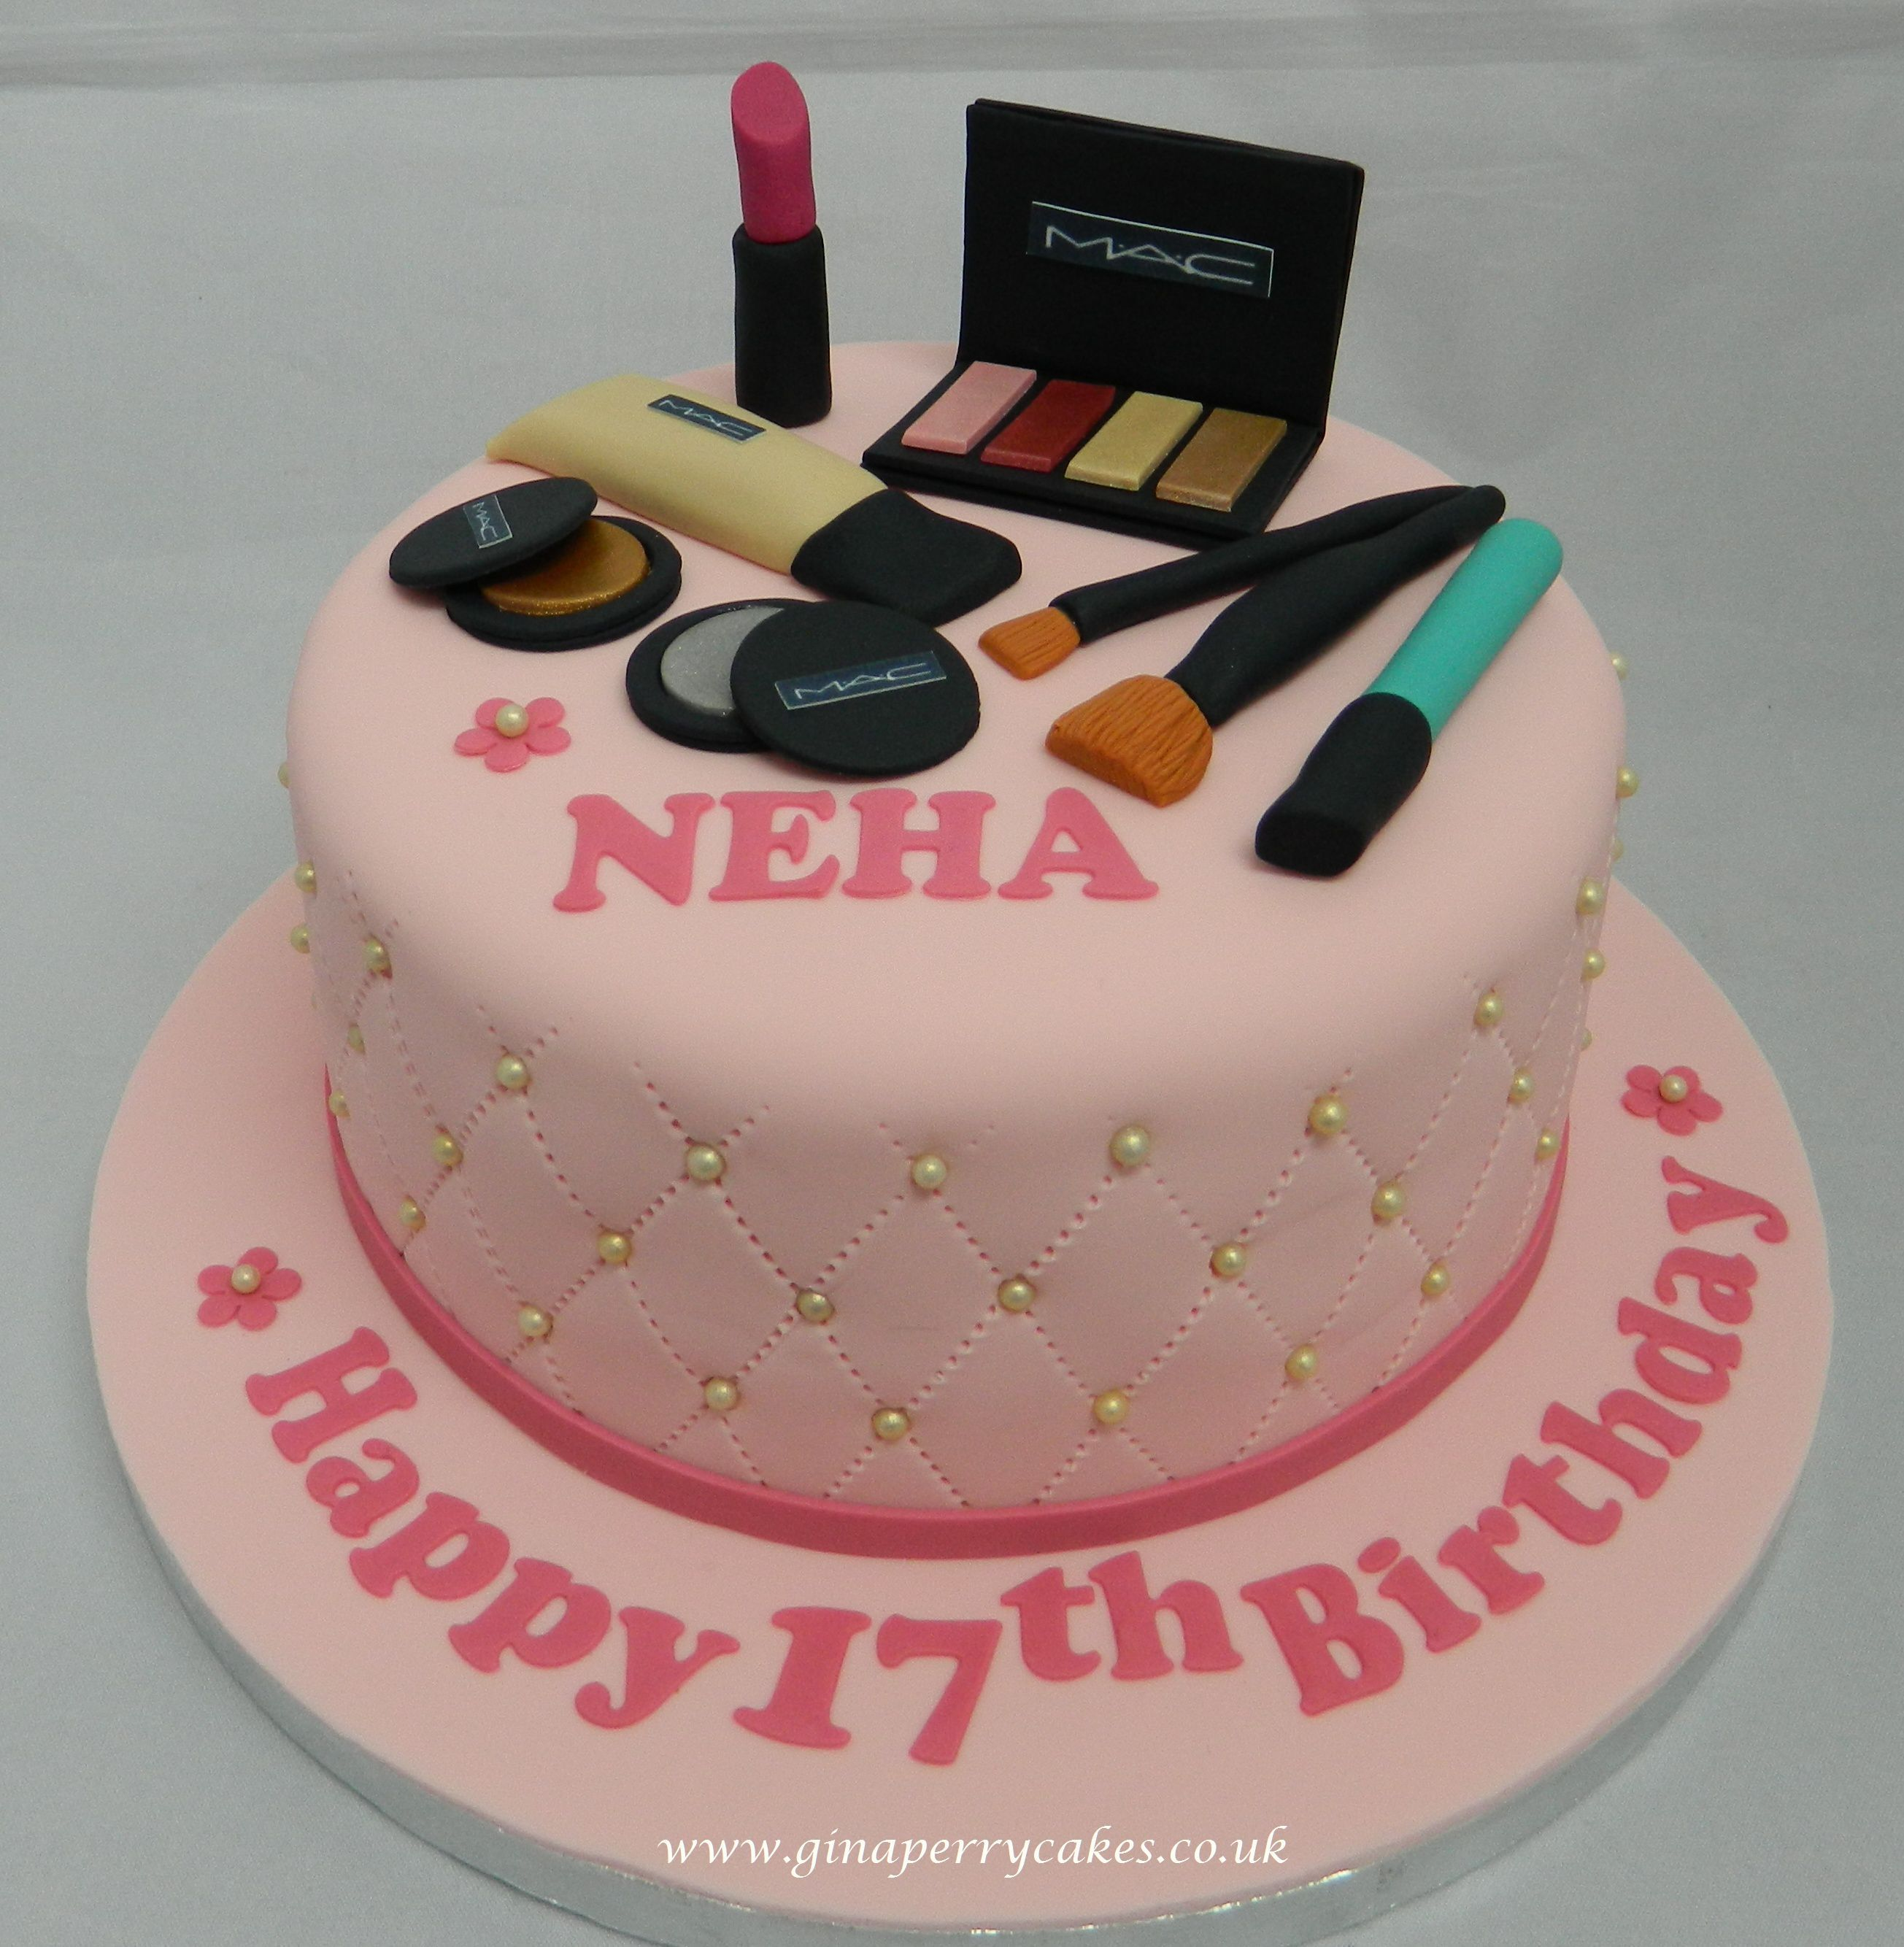 Make Up Themed Birthday Cake For A Teenager